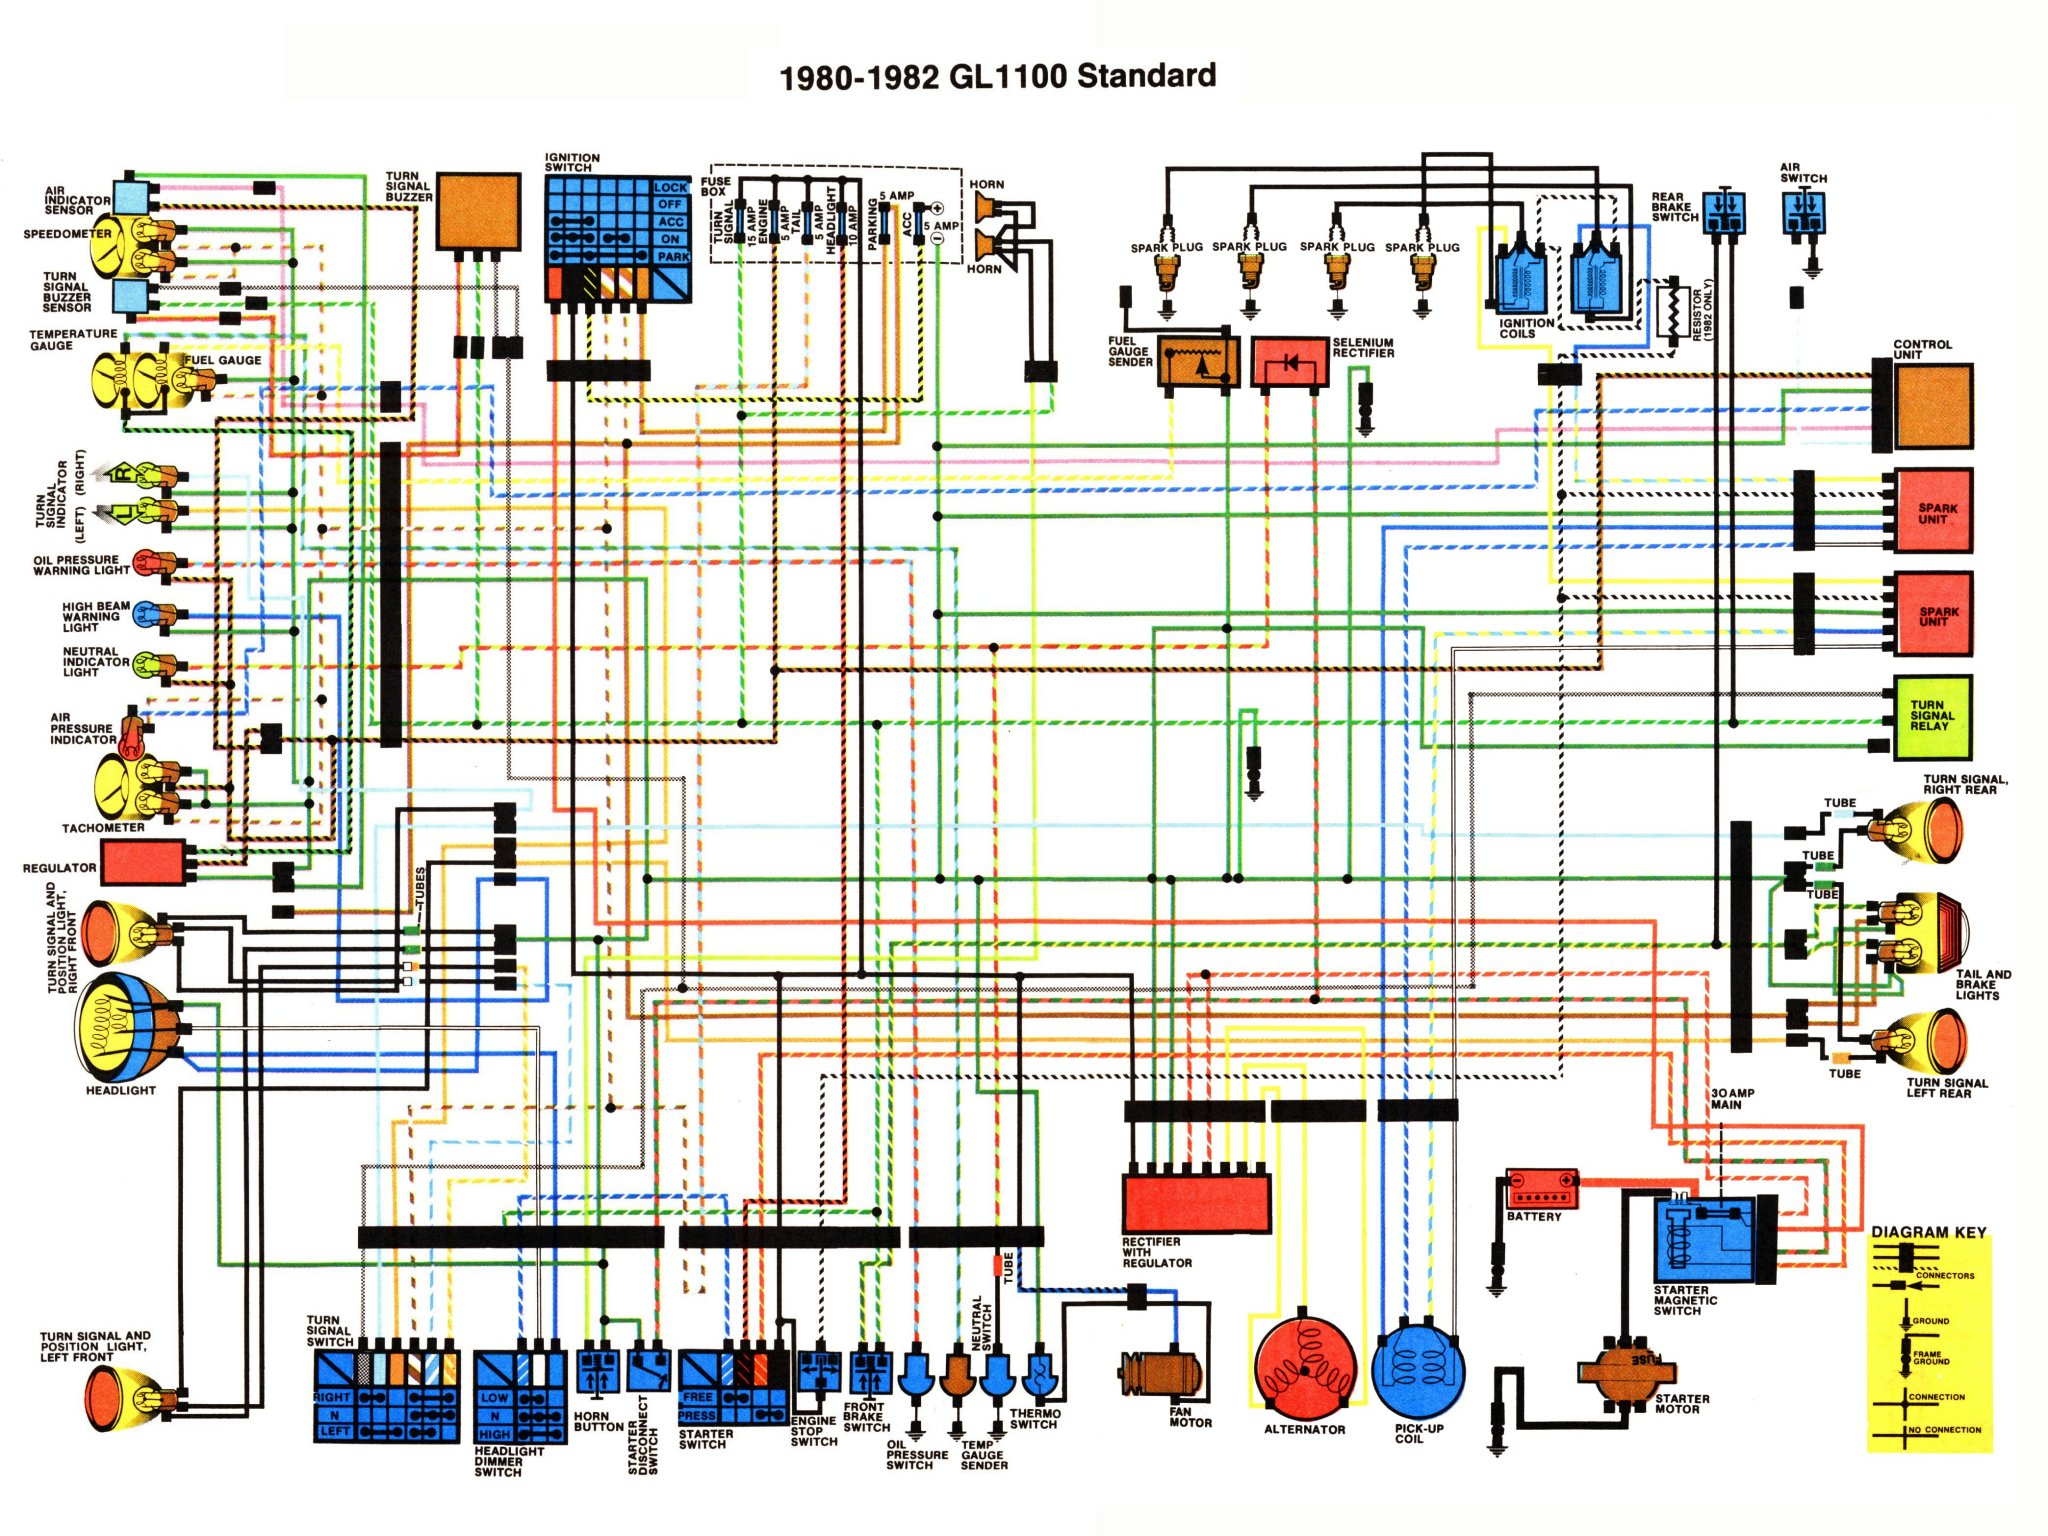 Wiring For 1984 Goldwing Cb Radio Diagram Will Be A Thing 1300sa Electrical Residential Diagramstob 1986 Honda Free Download Just Data Rh Ag Skiphire Co Uk 1800